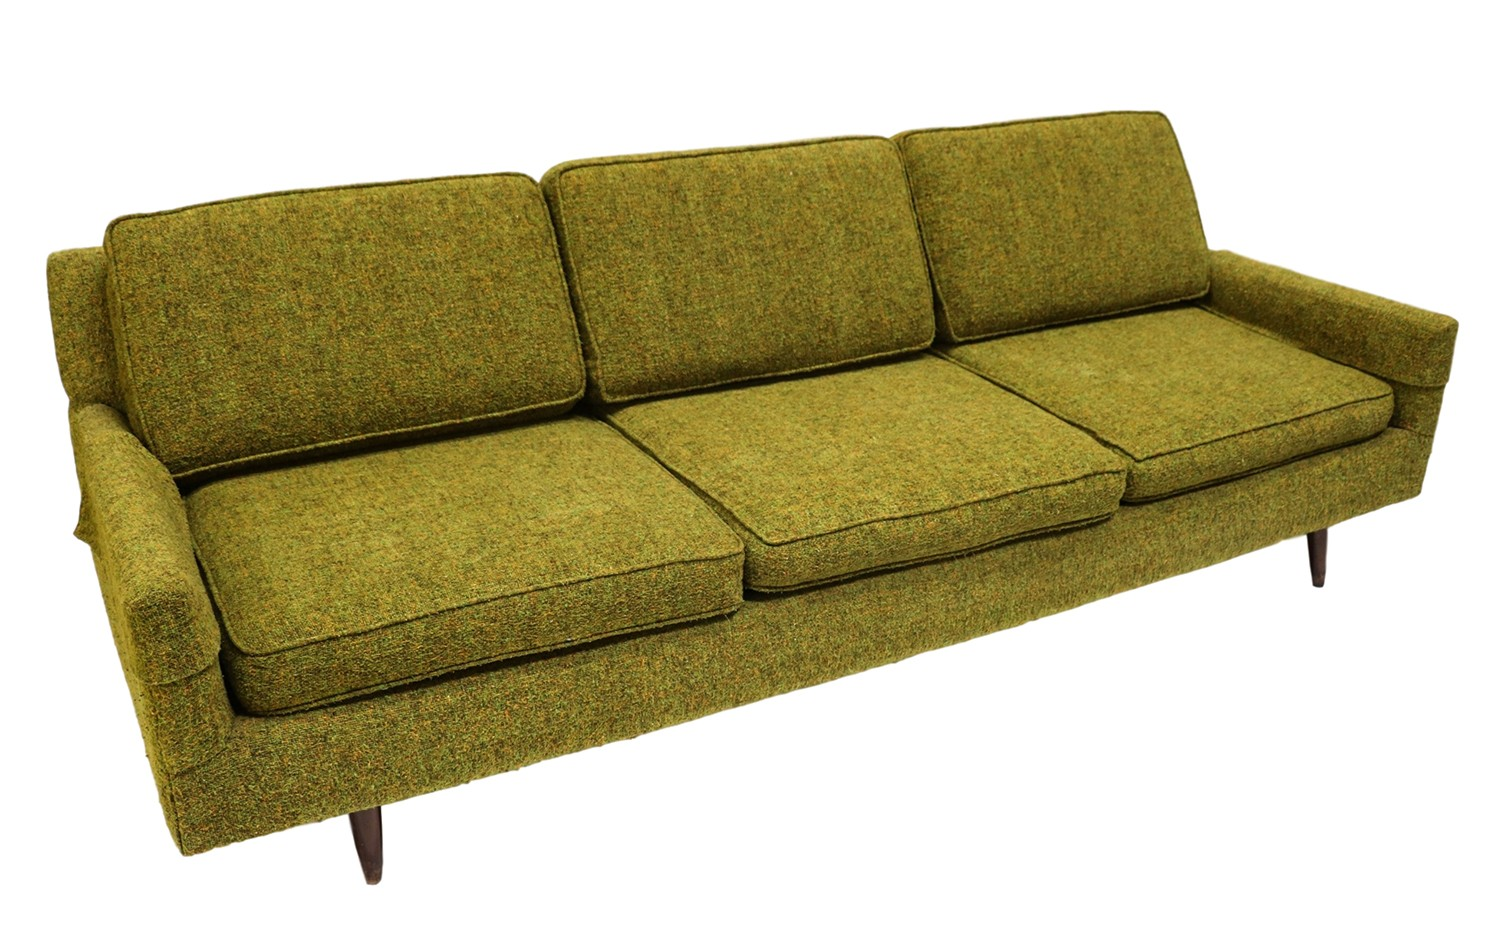 upholstery of sofa scandinavian furniture beds mid century modern green upholstered